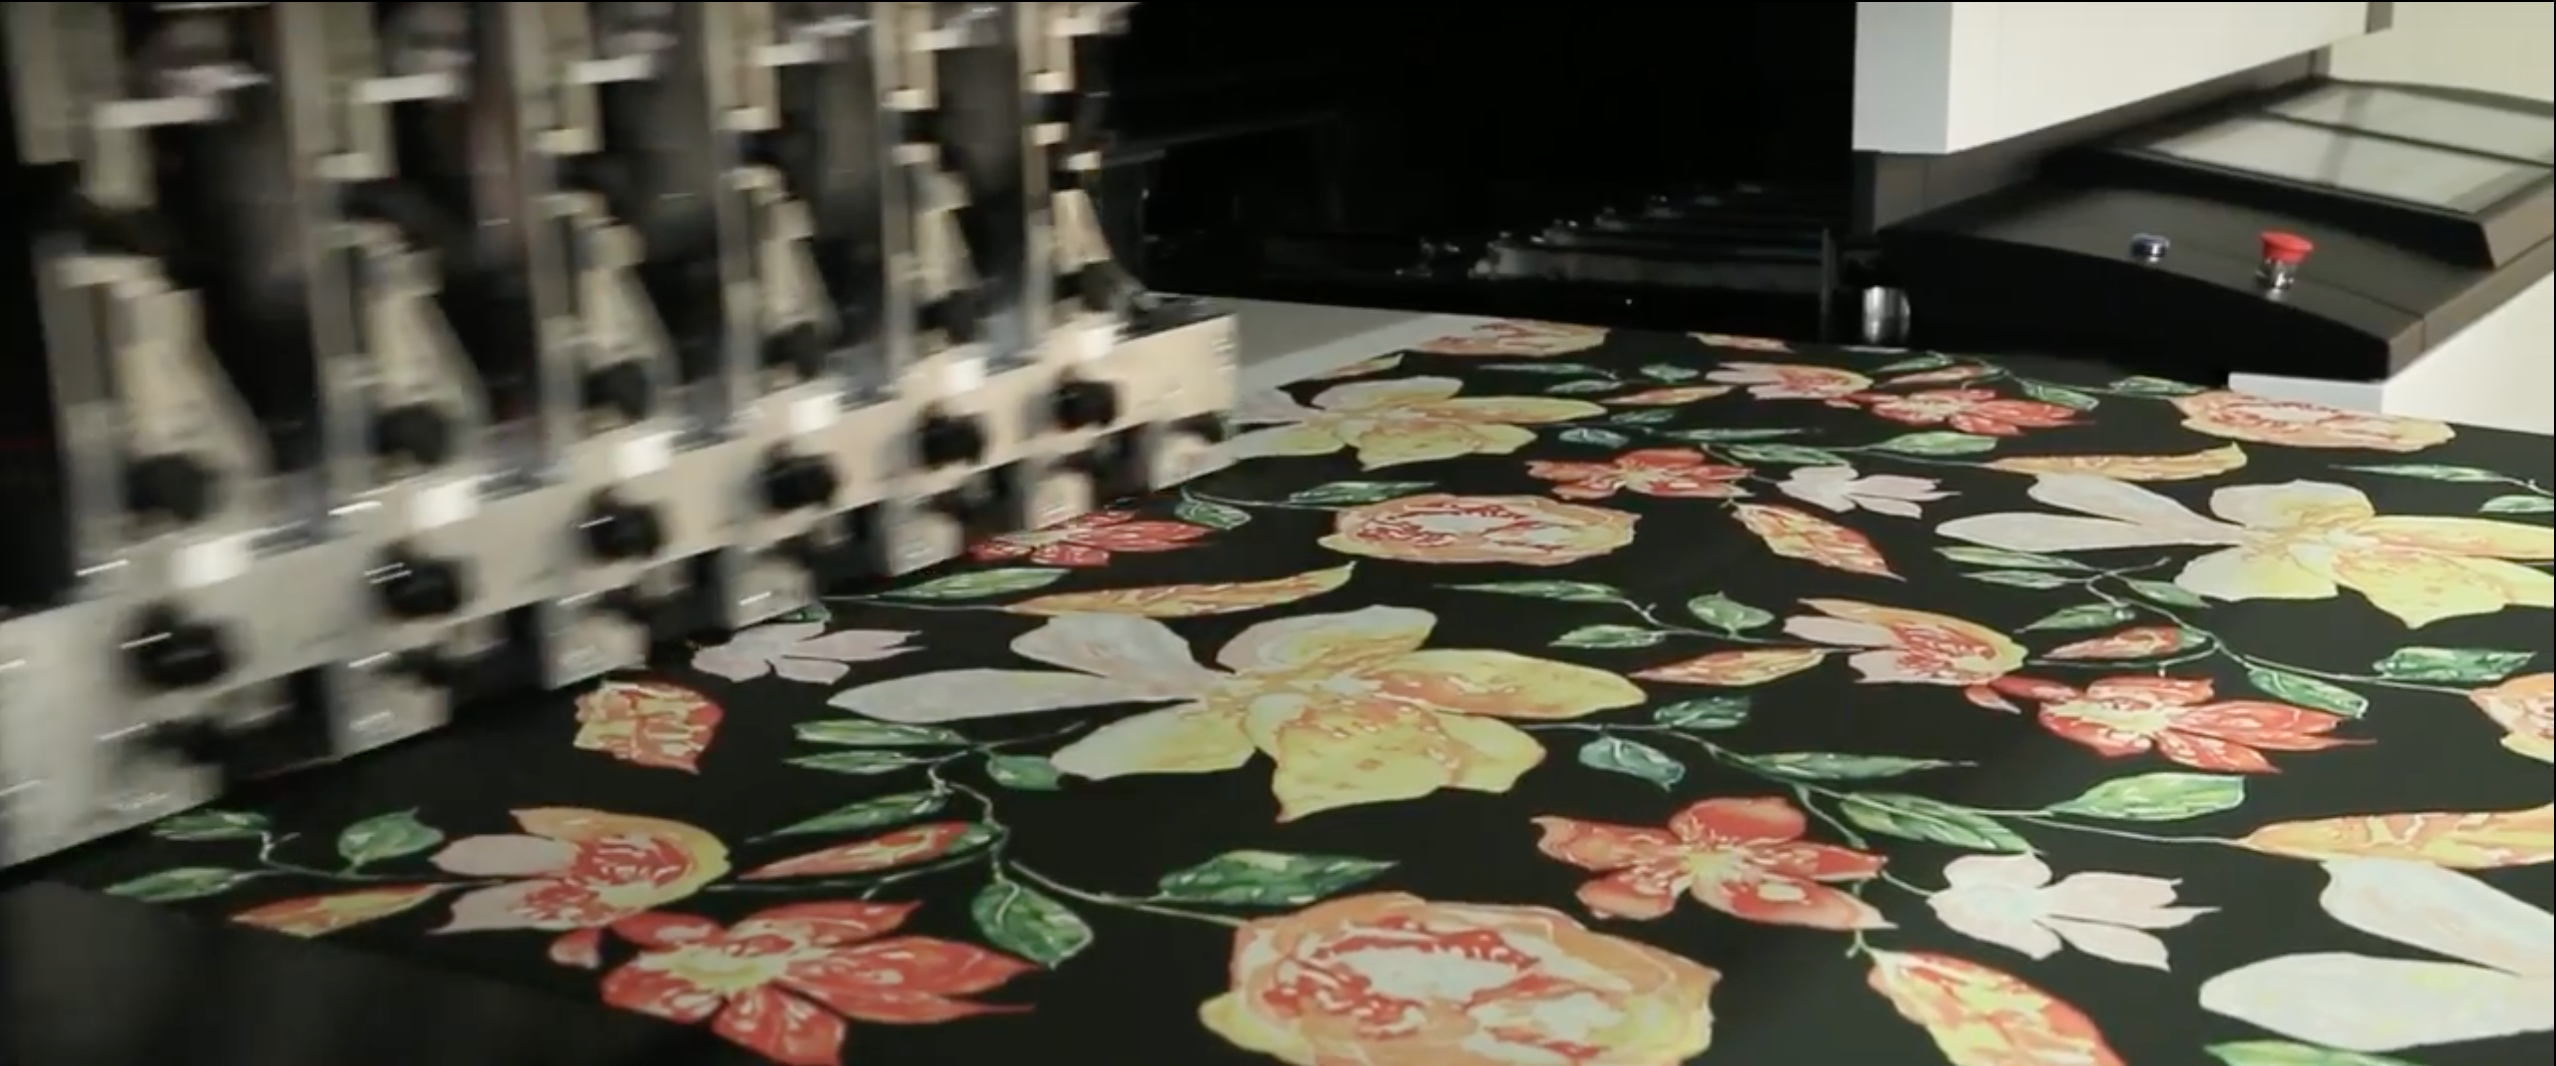 The Note] What determines the price of a digital fabric printing